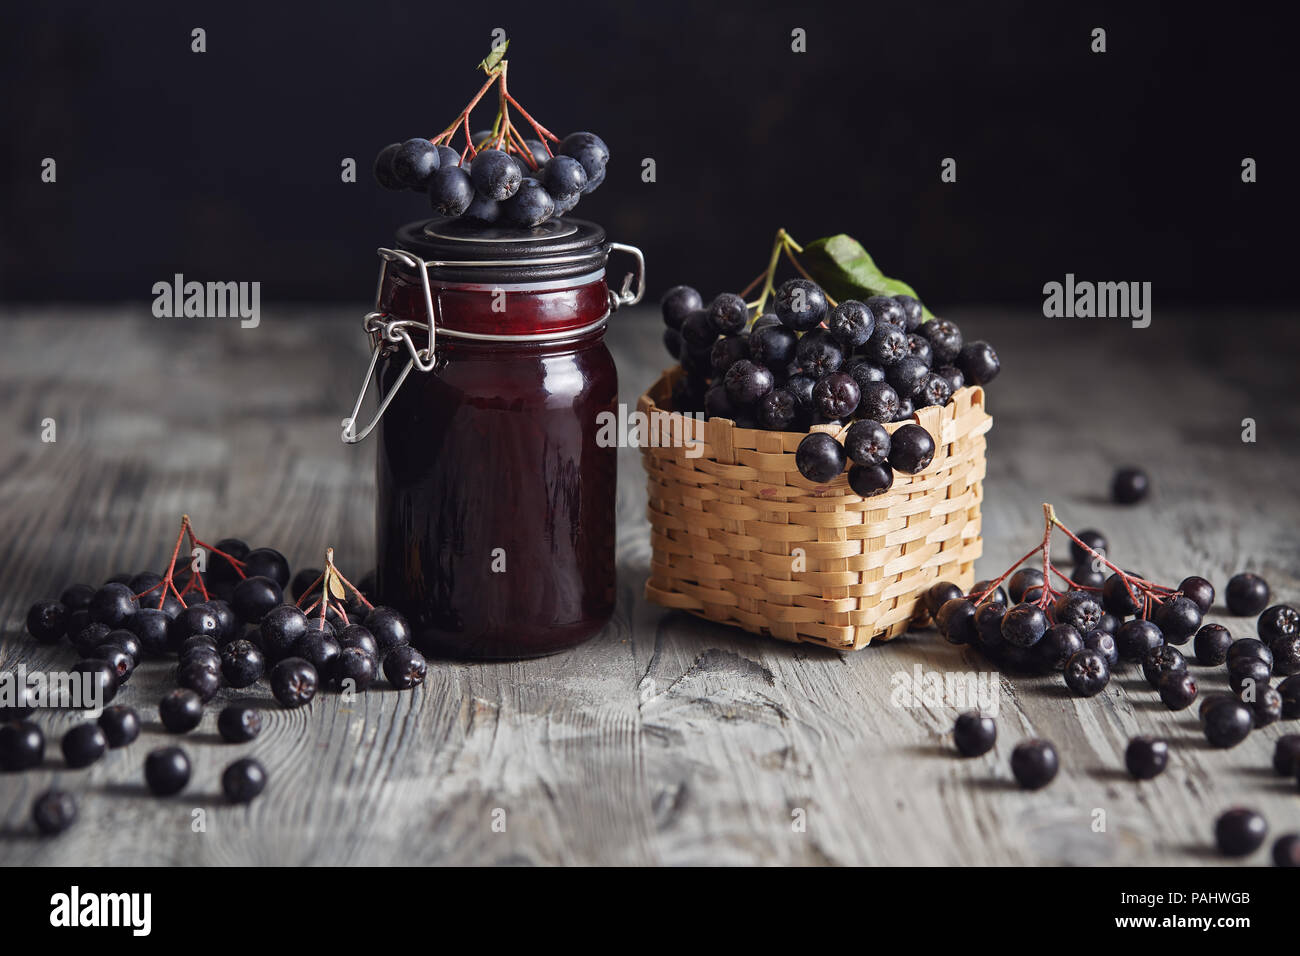 Aronia jam next to fresh berries. Homemade aronia jam in glass jar with fresh aronia berries on wooden table. - Stock Image